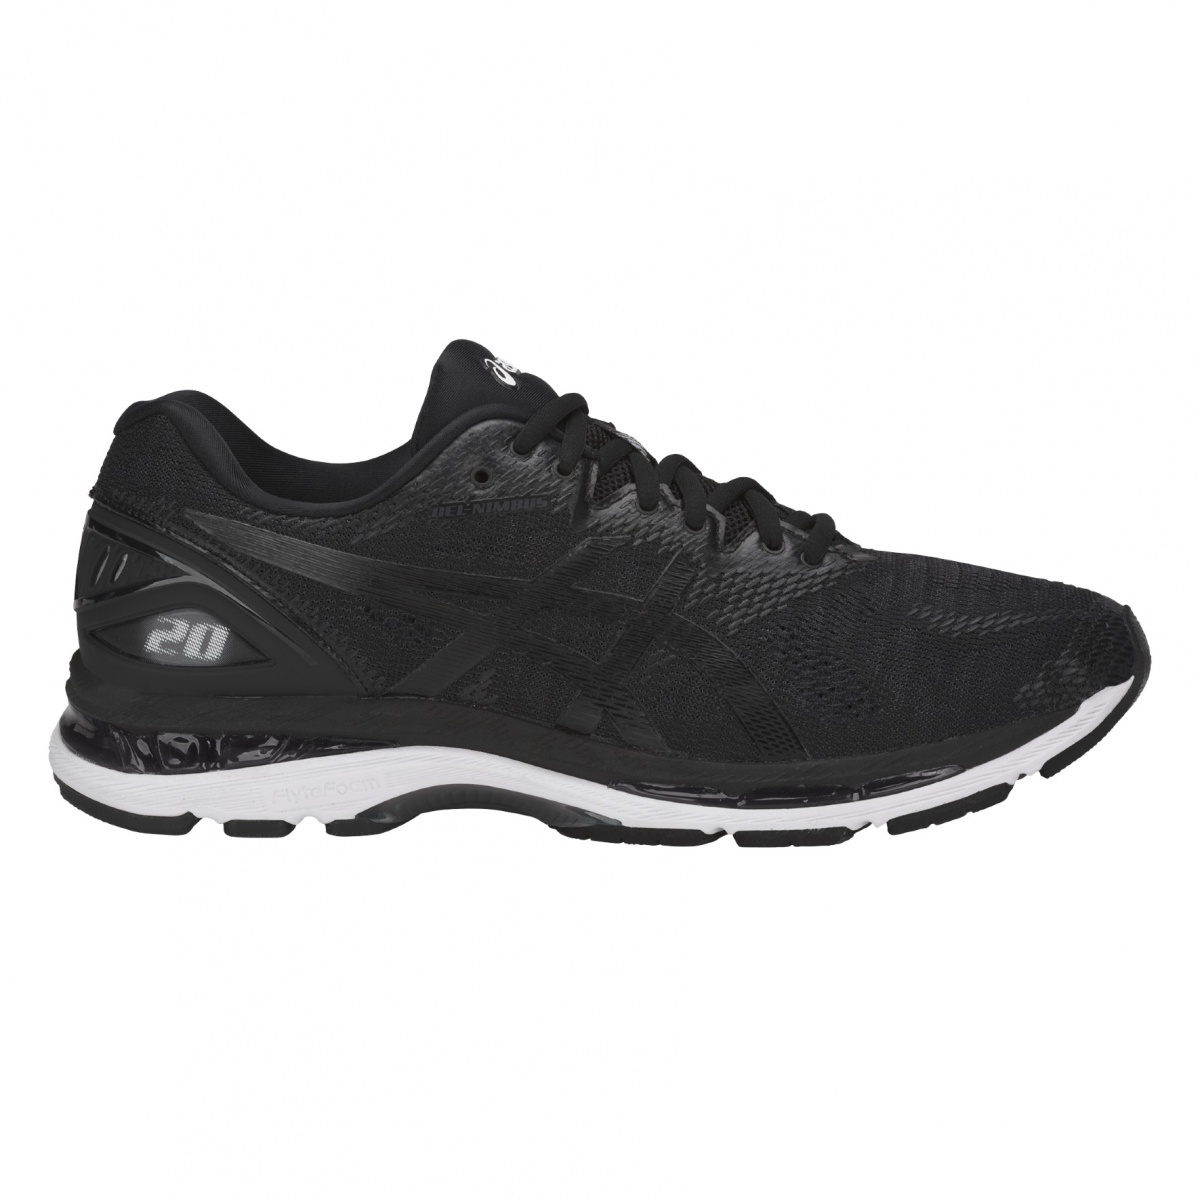 competitive price a2589 fa7f2 Asics T800N 9001 f l primary LR-1200x1200.jpg